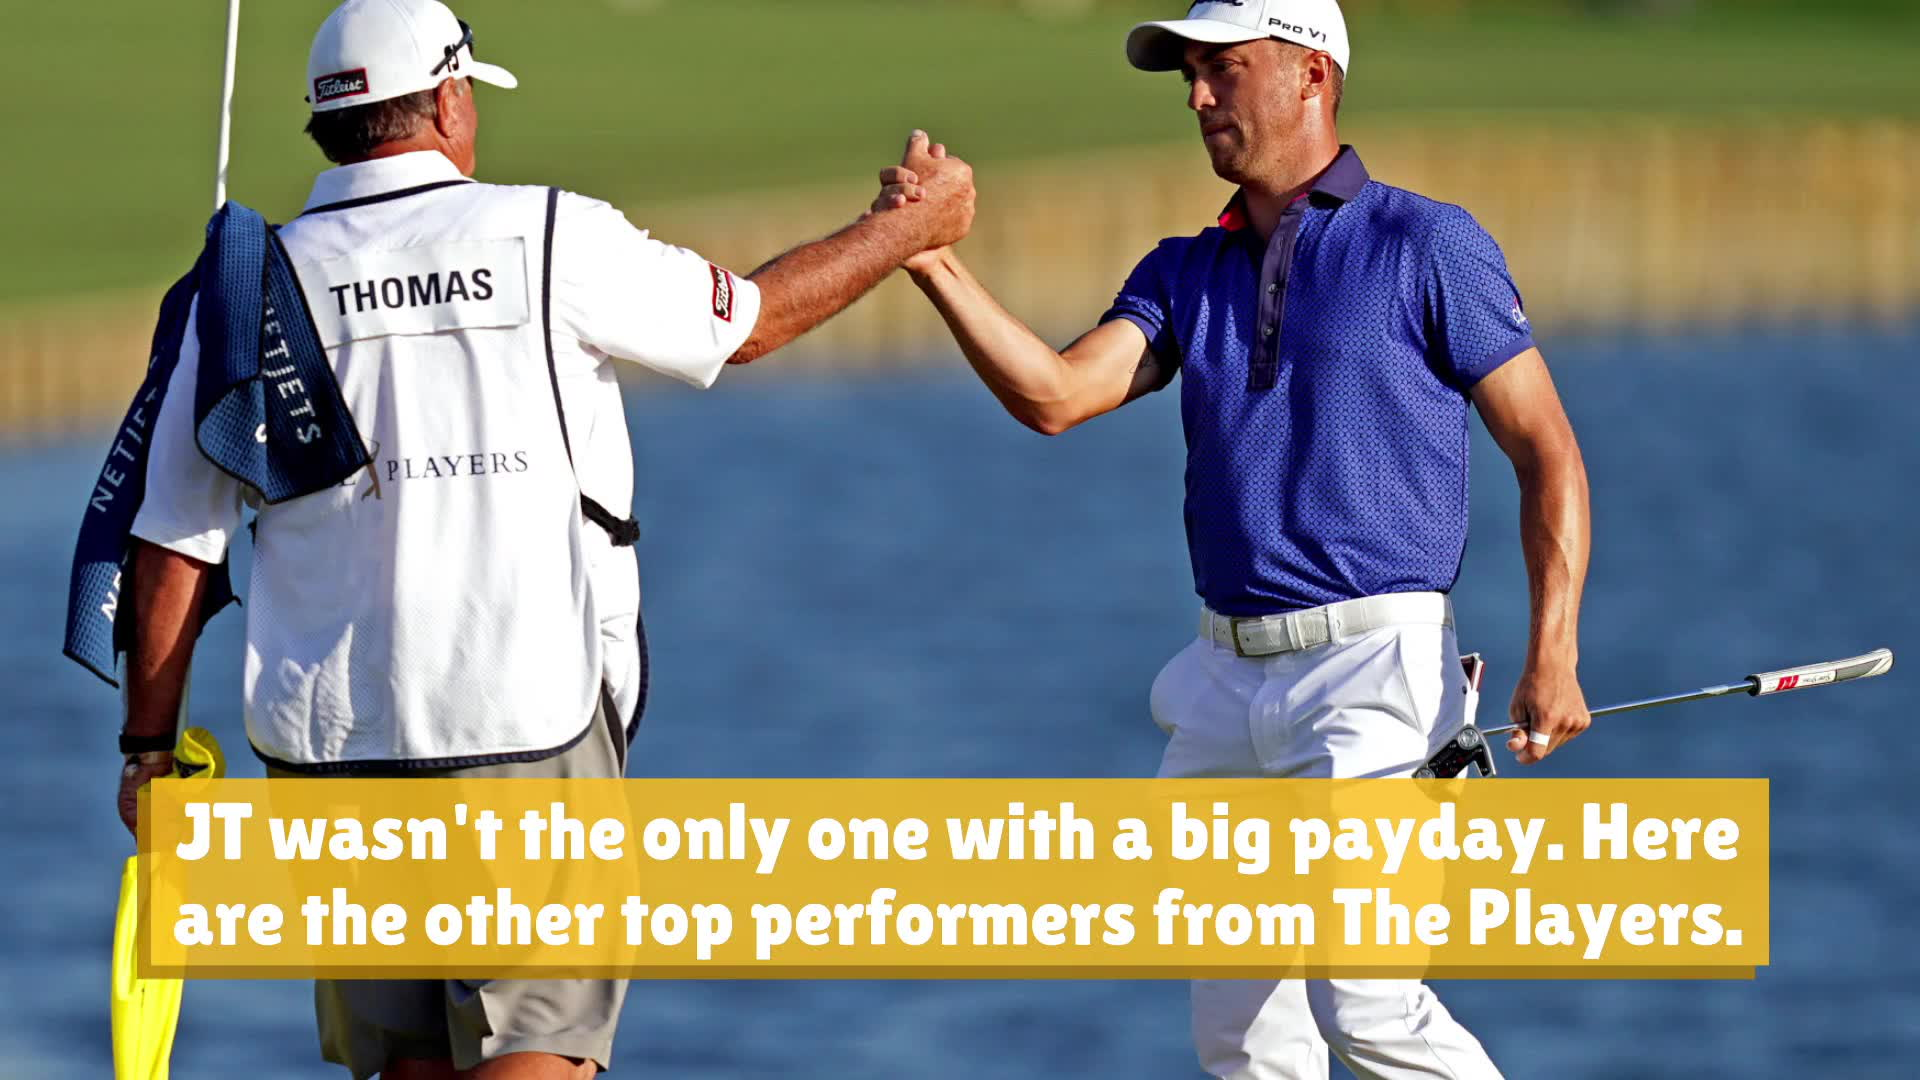 Just how much money the best PGA Tour player won at the Players Championship thumbnail